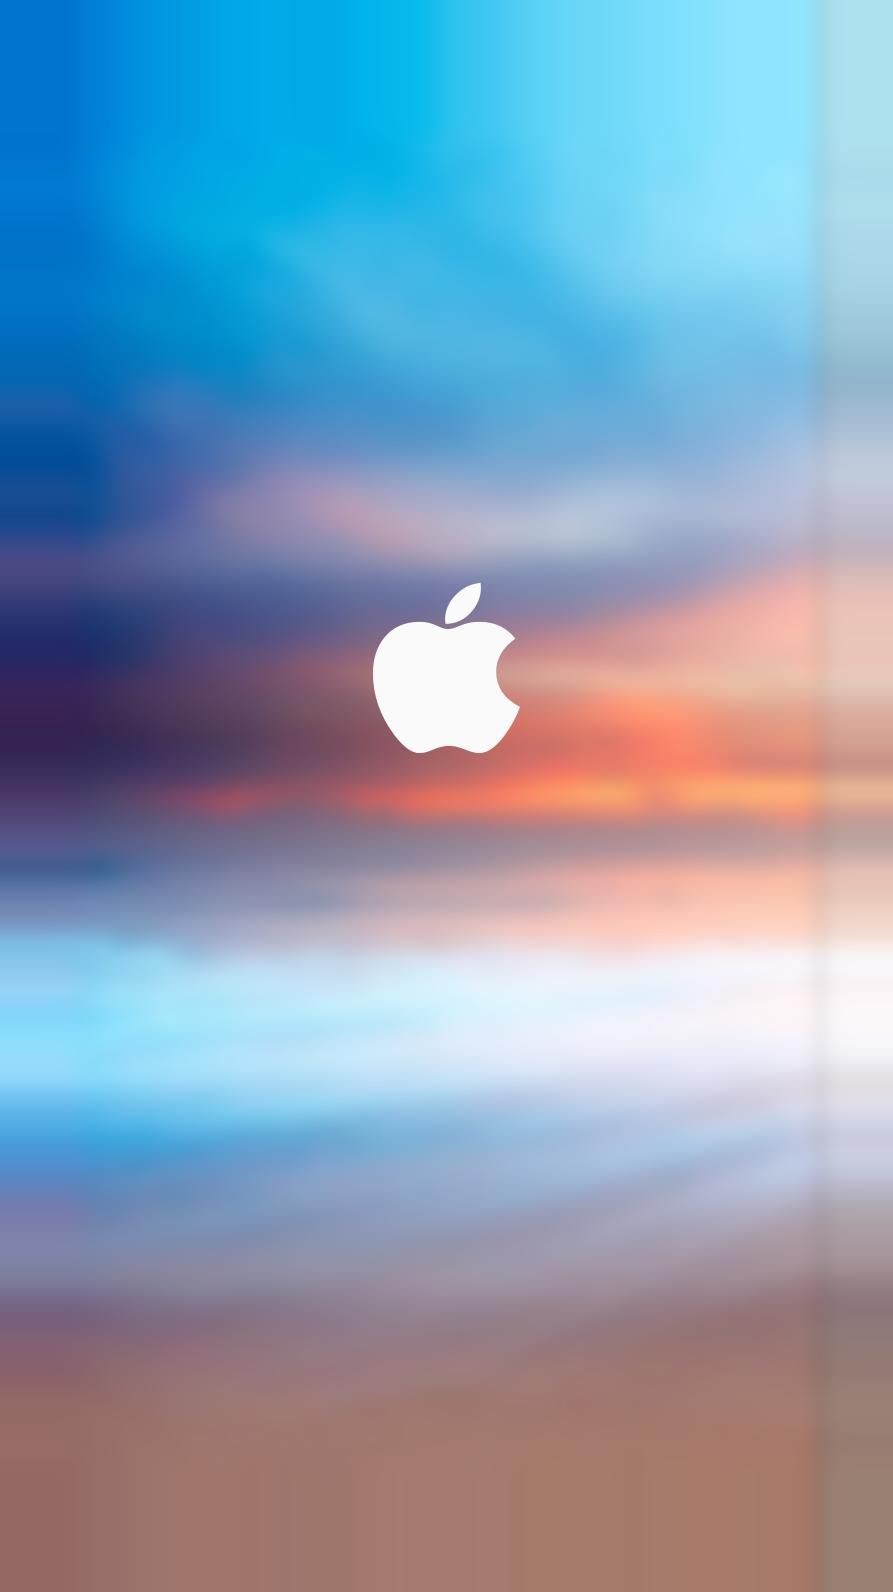 Apple Logo Splash Parallax Turquoise Iphone  And Iphone  Plus Hd Wallpaper